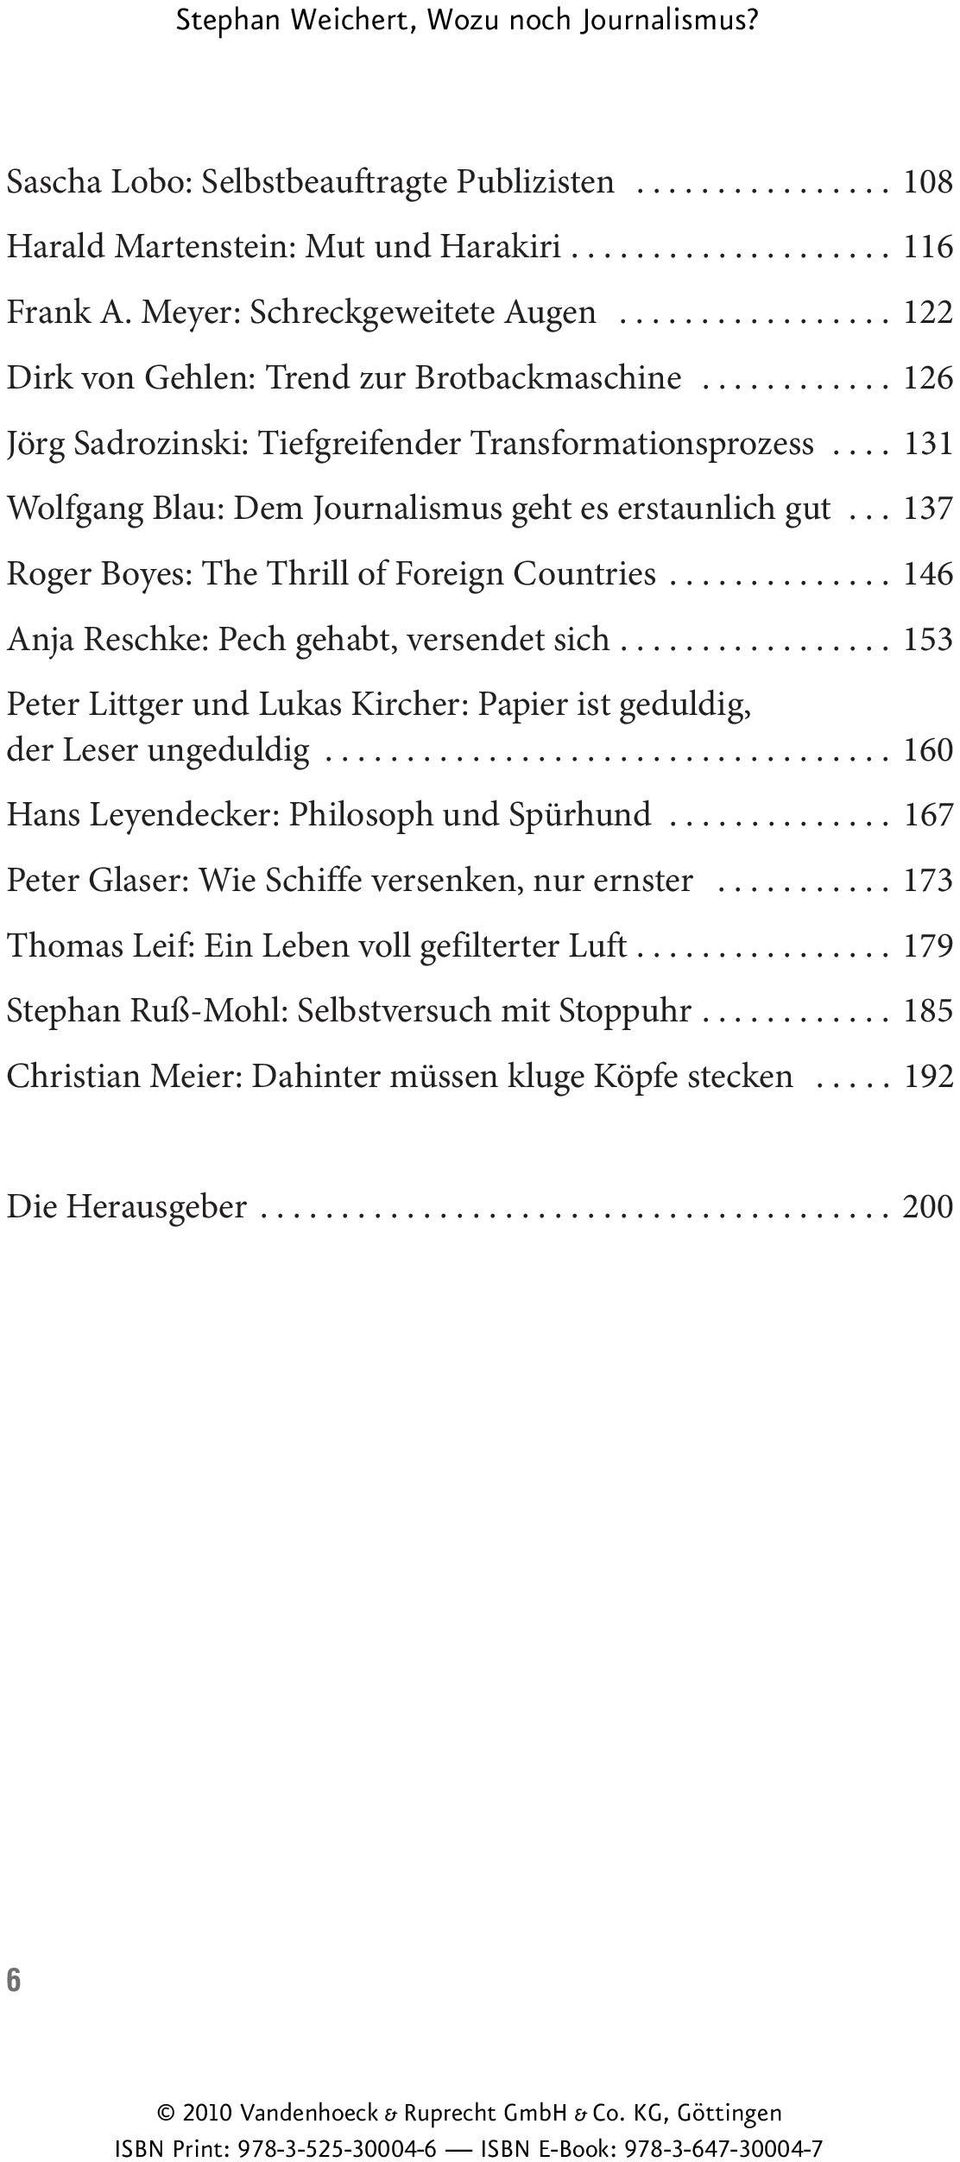 .. 137 Roger Boyes: The Thrill of Foreign Countries.............. 146 Anja Reschke: Pech gehabt, versendet sich................. 153 Peter Littger und Lukas Kircher: Papier ist geduldig, der Leser ungeduldig.